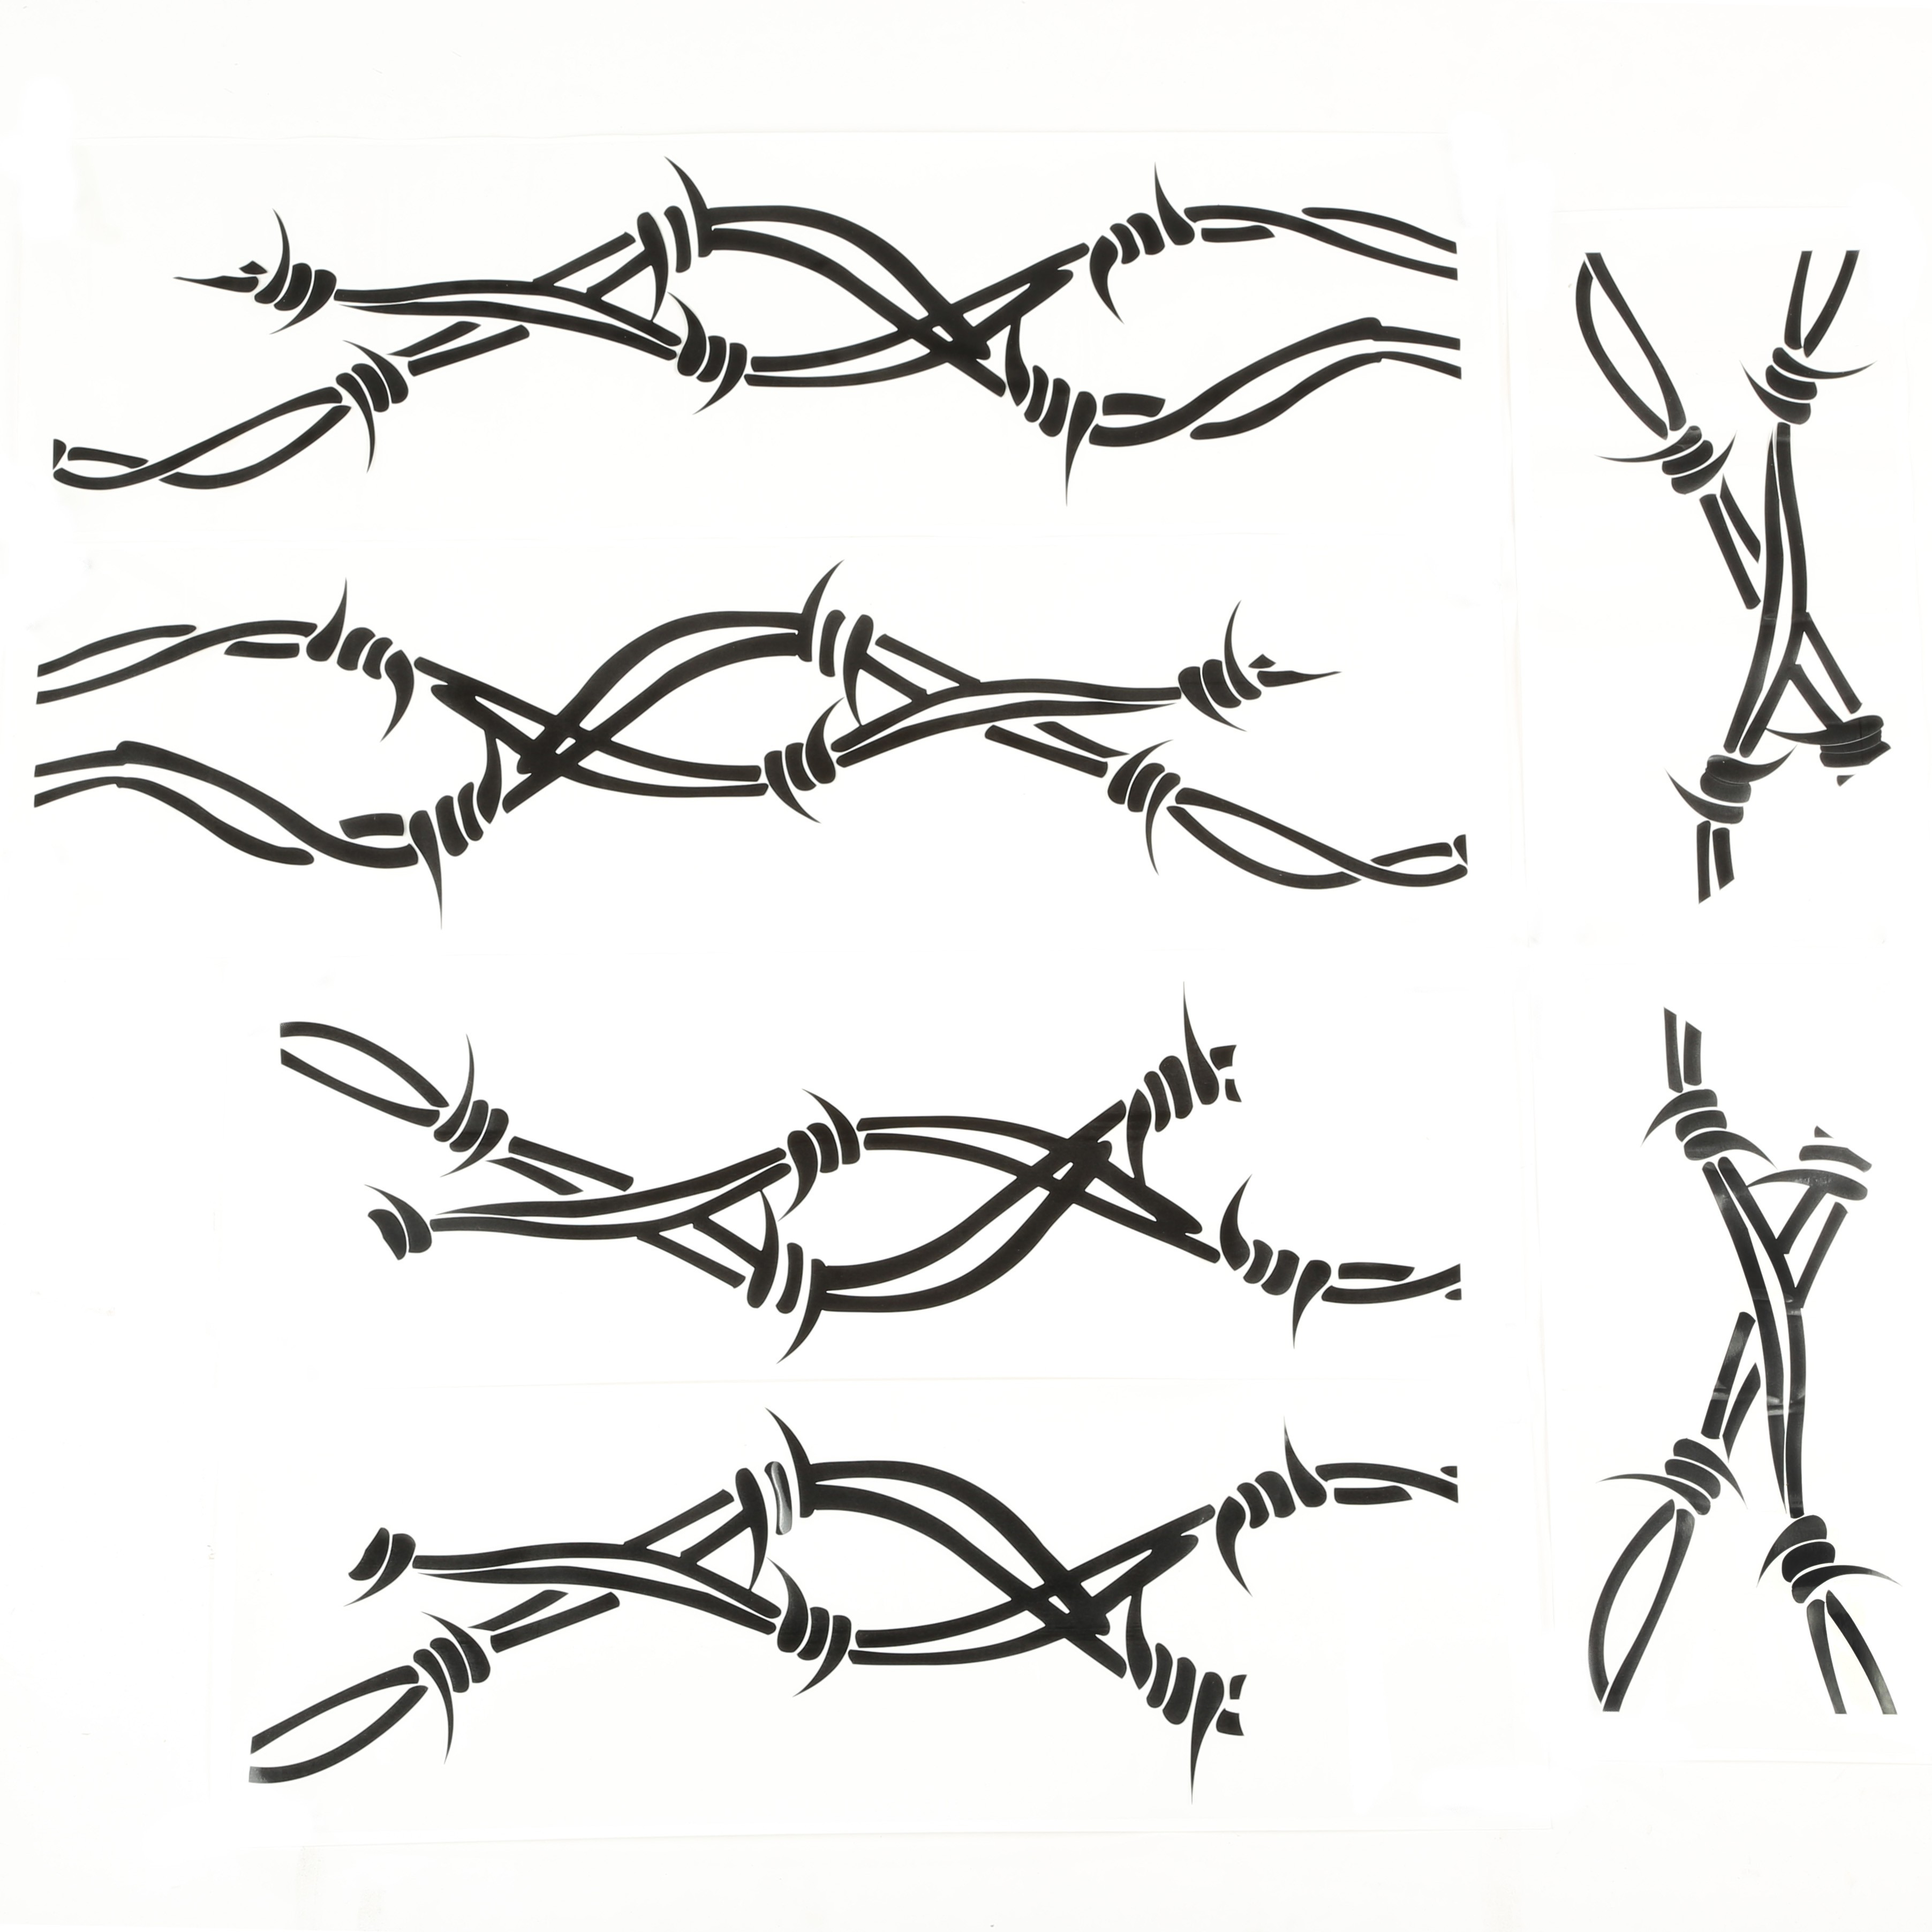 Barbed wire drawing at getdrawings free for personal